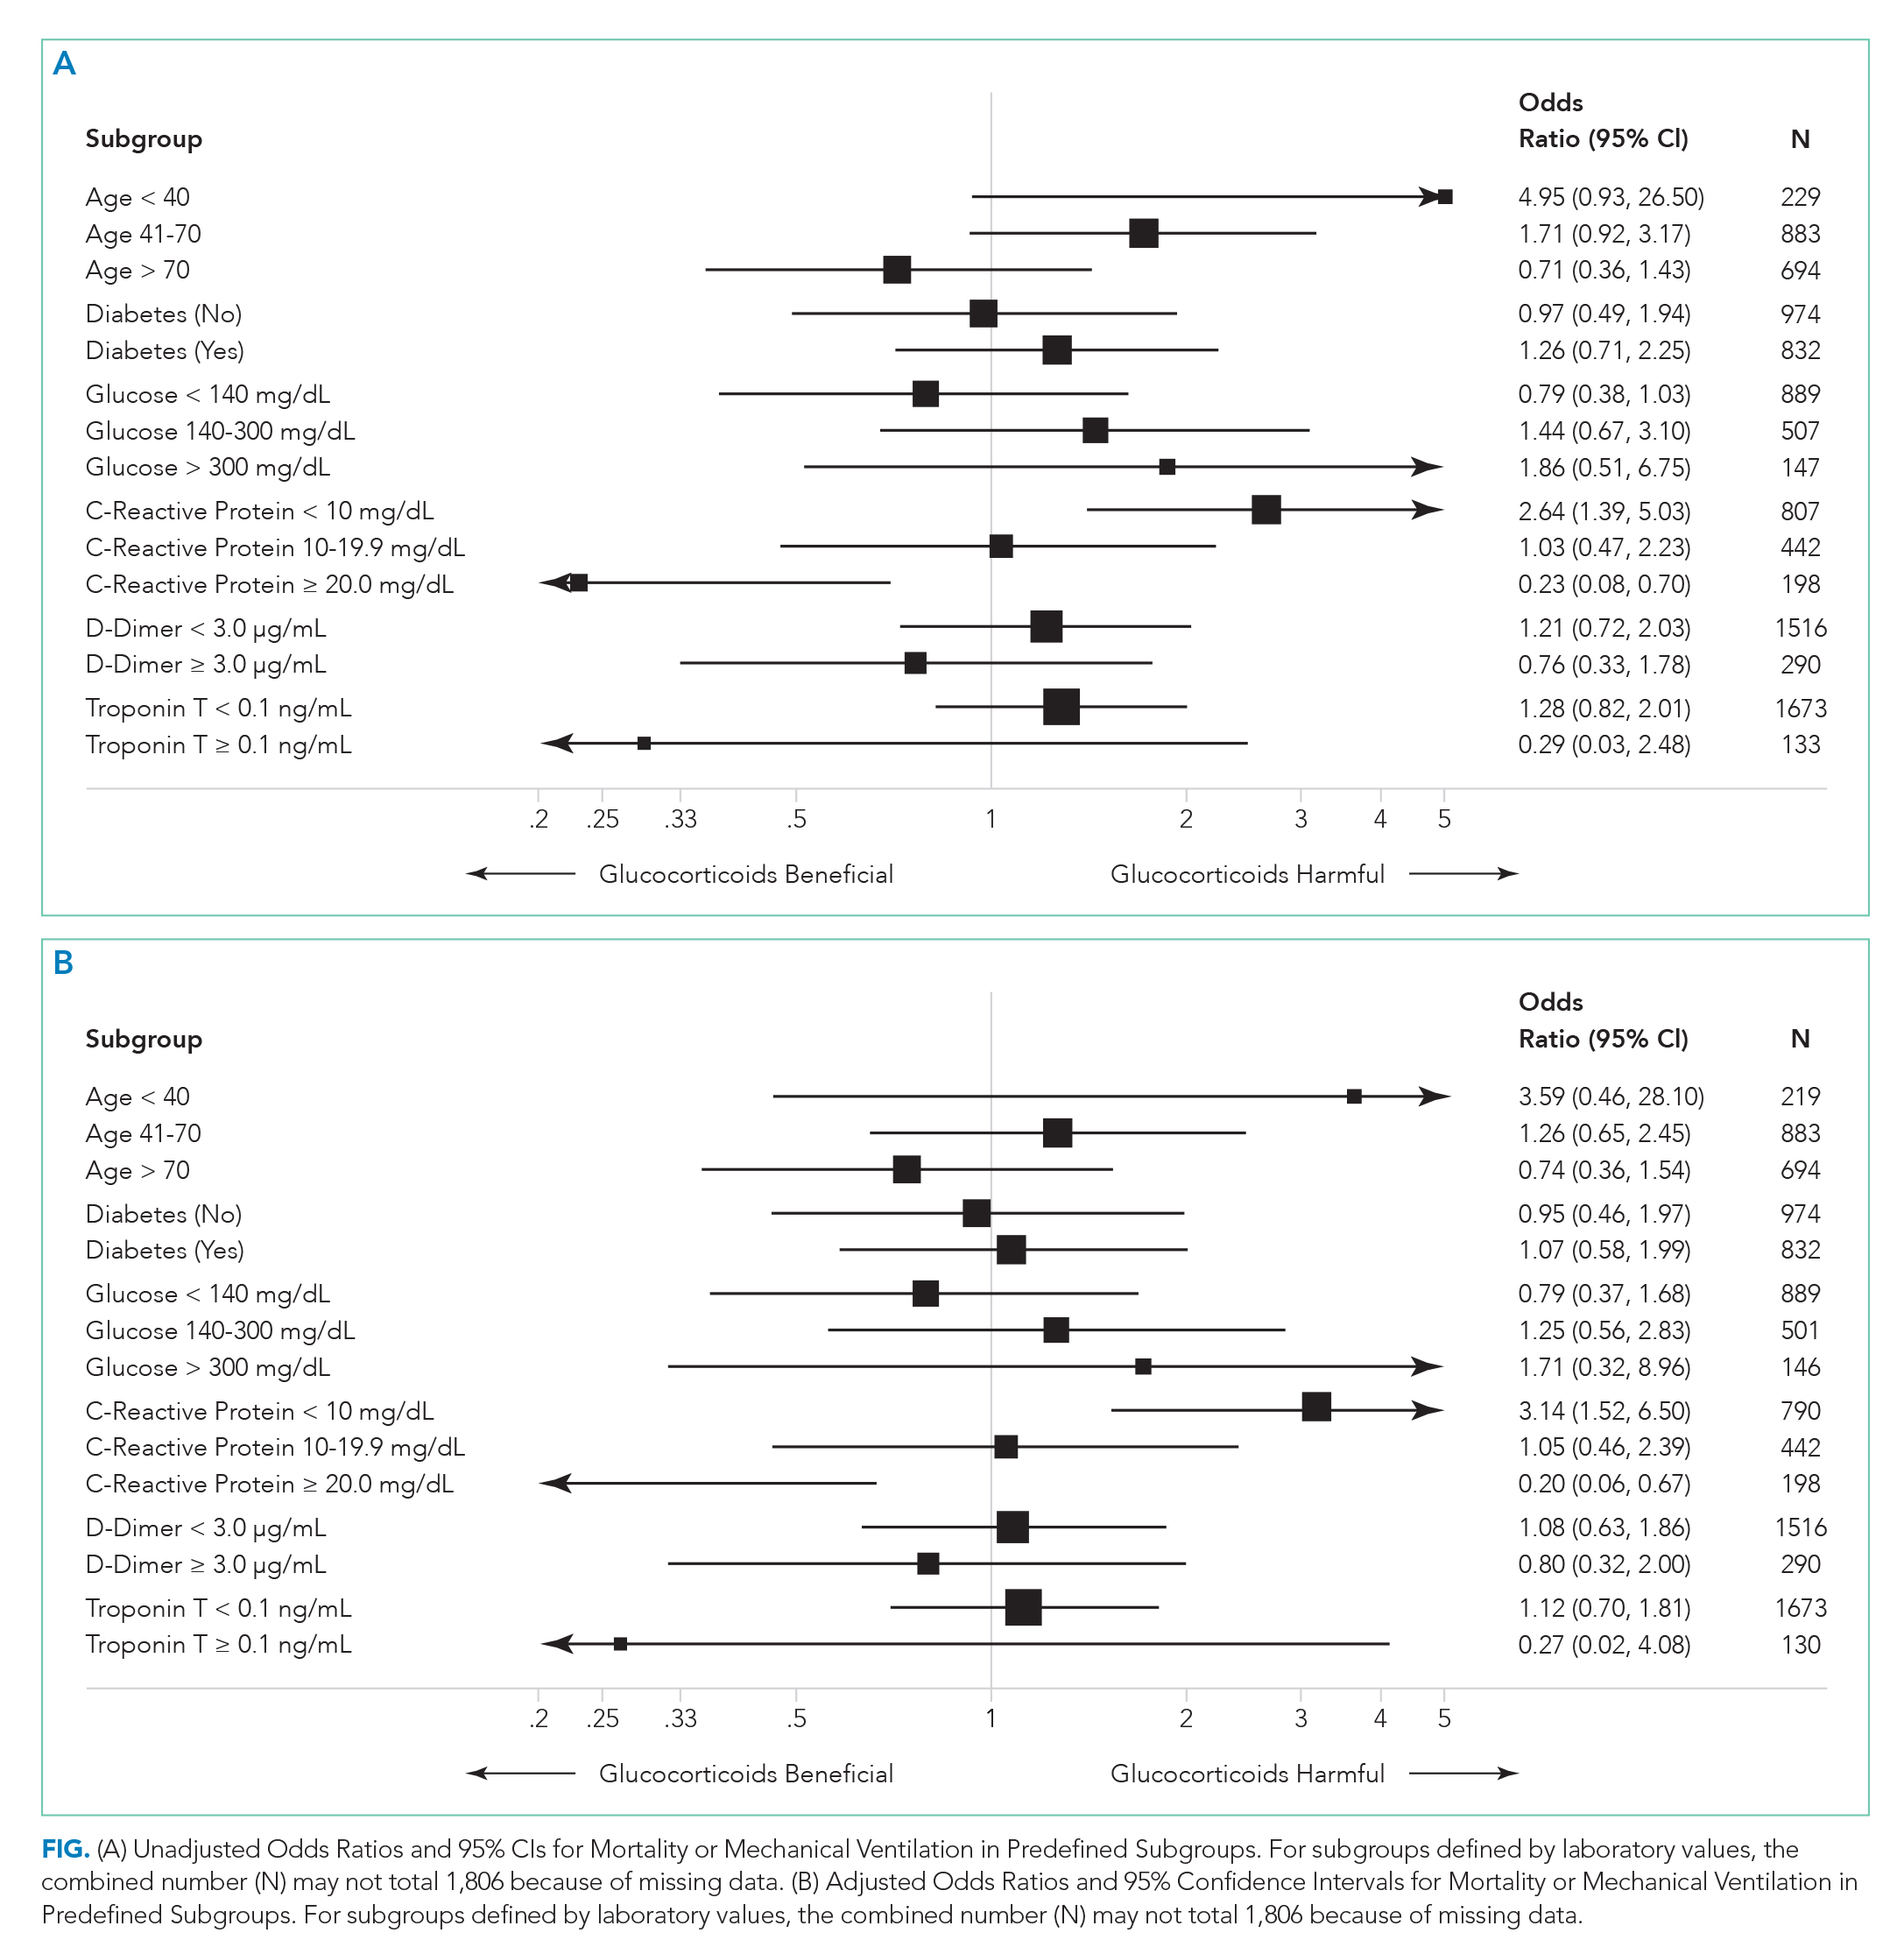 Unadjusted Odds Ratios and 95% CIs for Mortality or Mechanical Ventilation in Predefined Subgroups